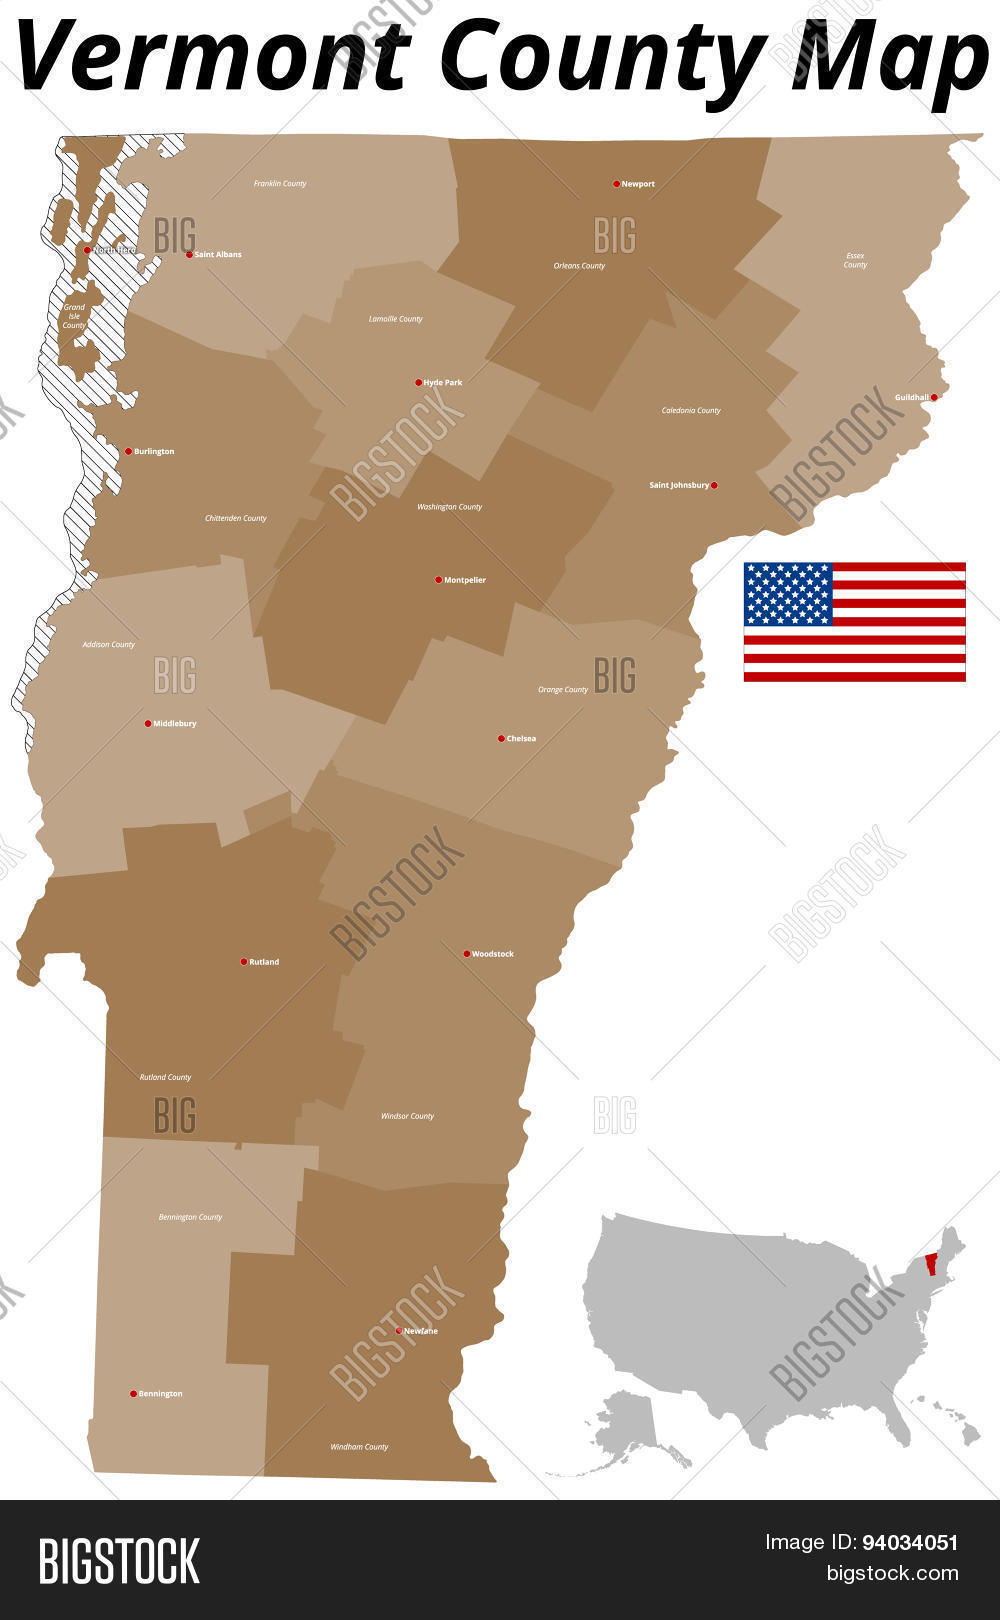 Vermont County Map Vector & Photo (Free Trial) | Bigstock